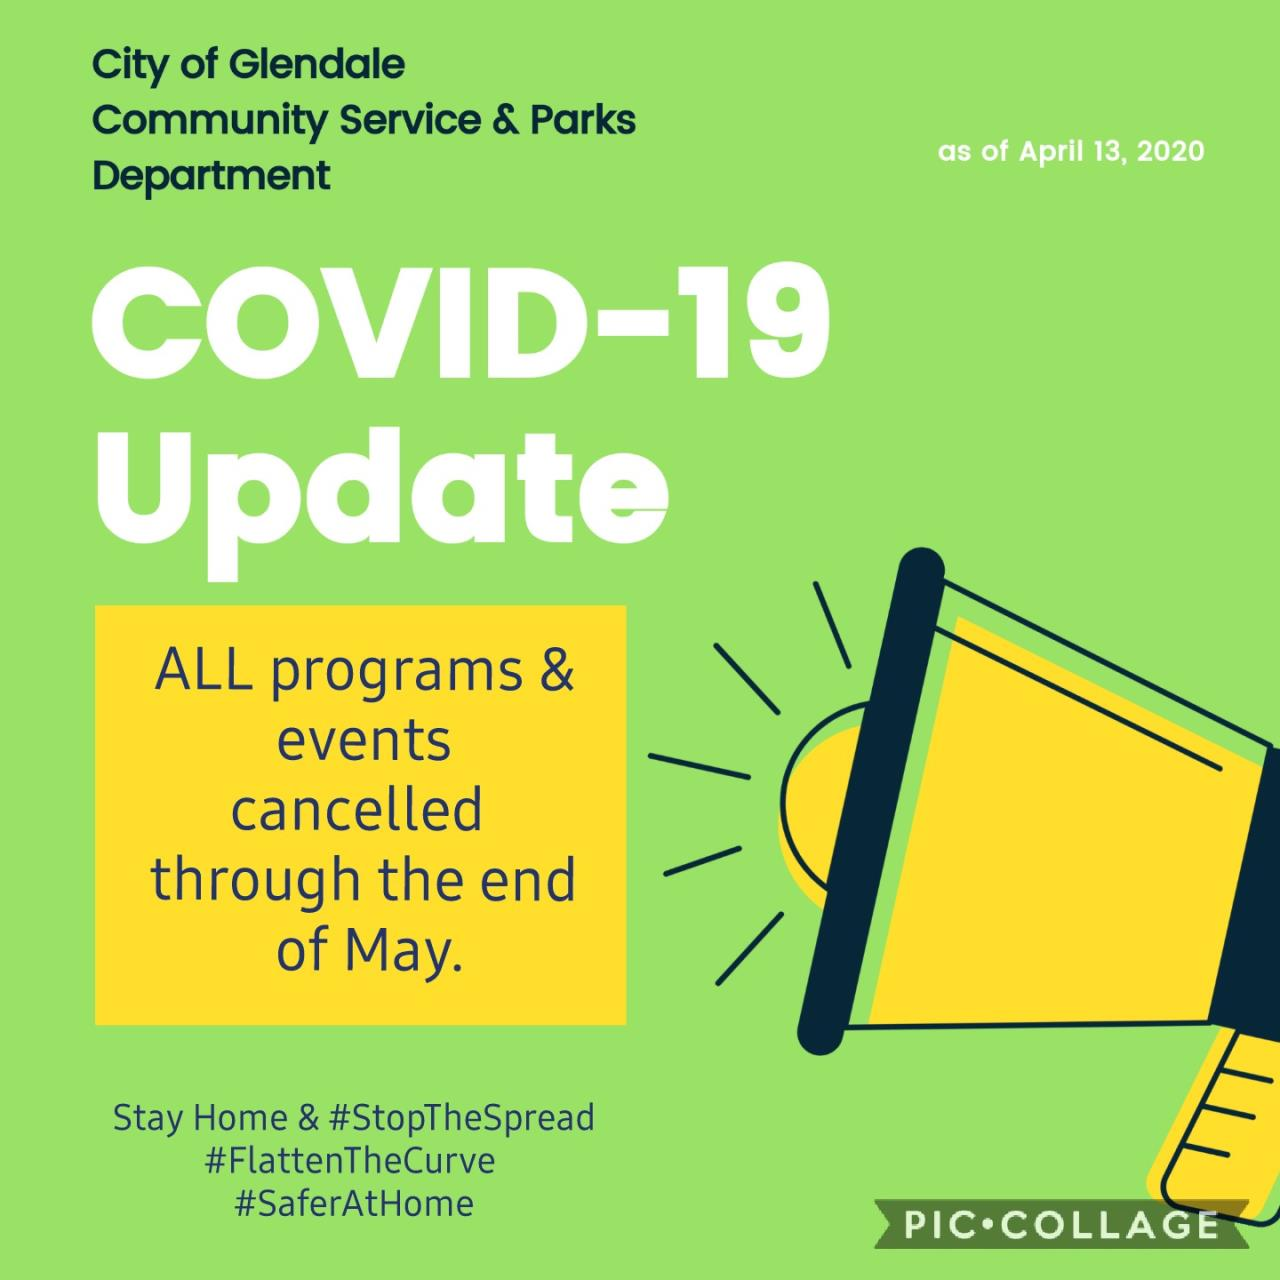 Cancellations through end of May